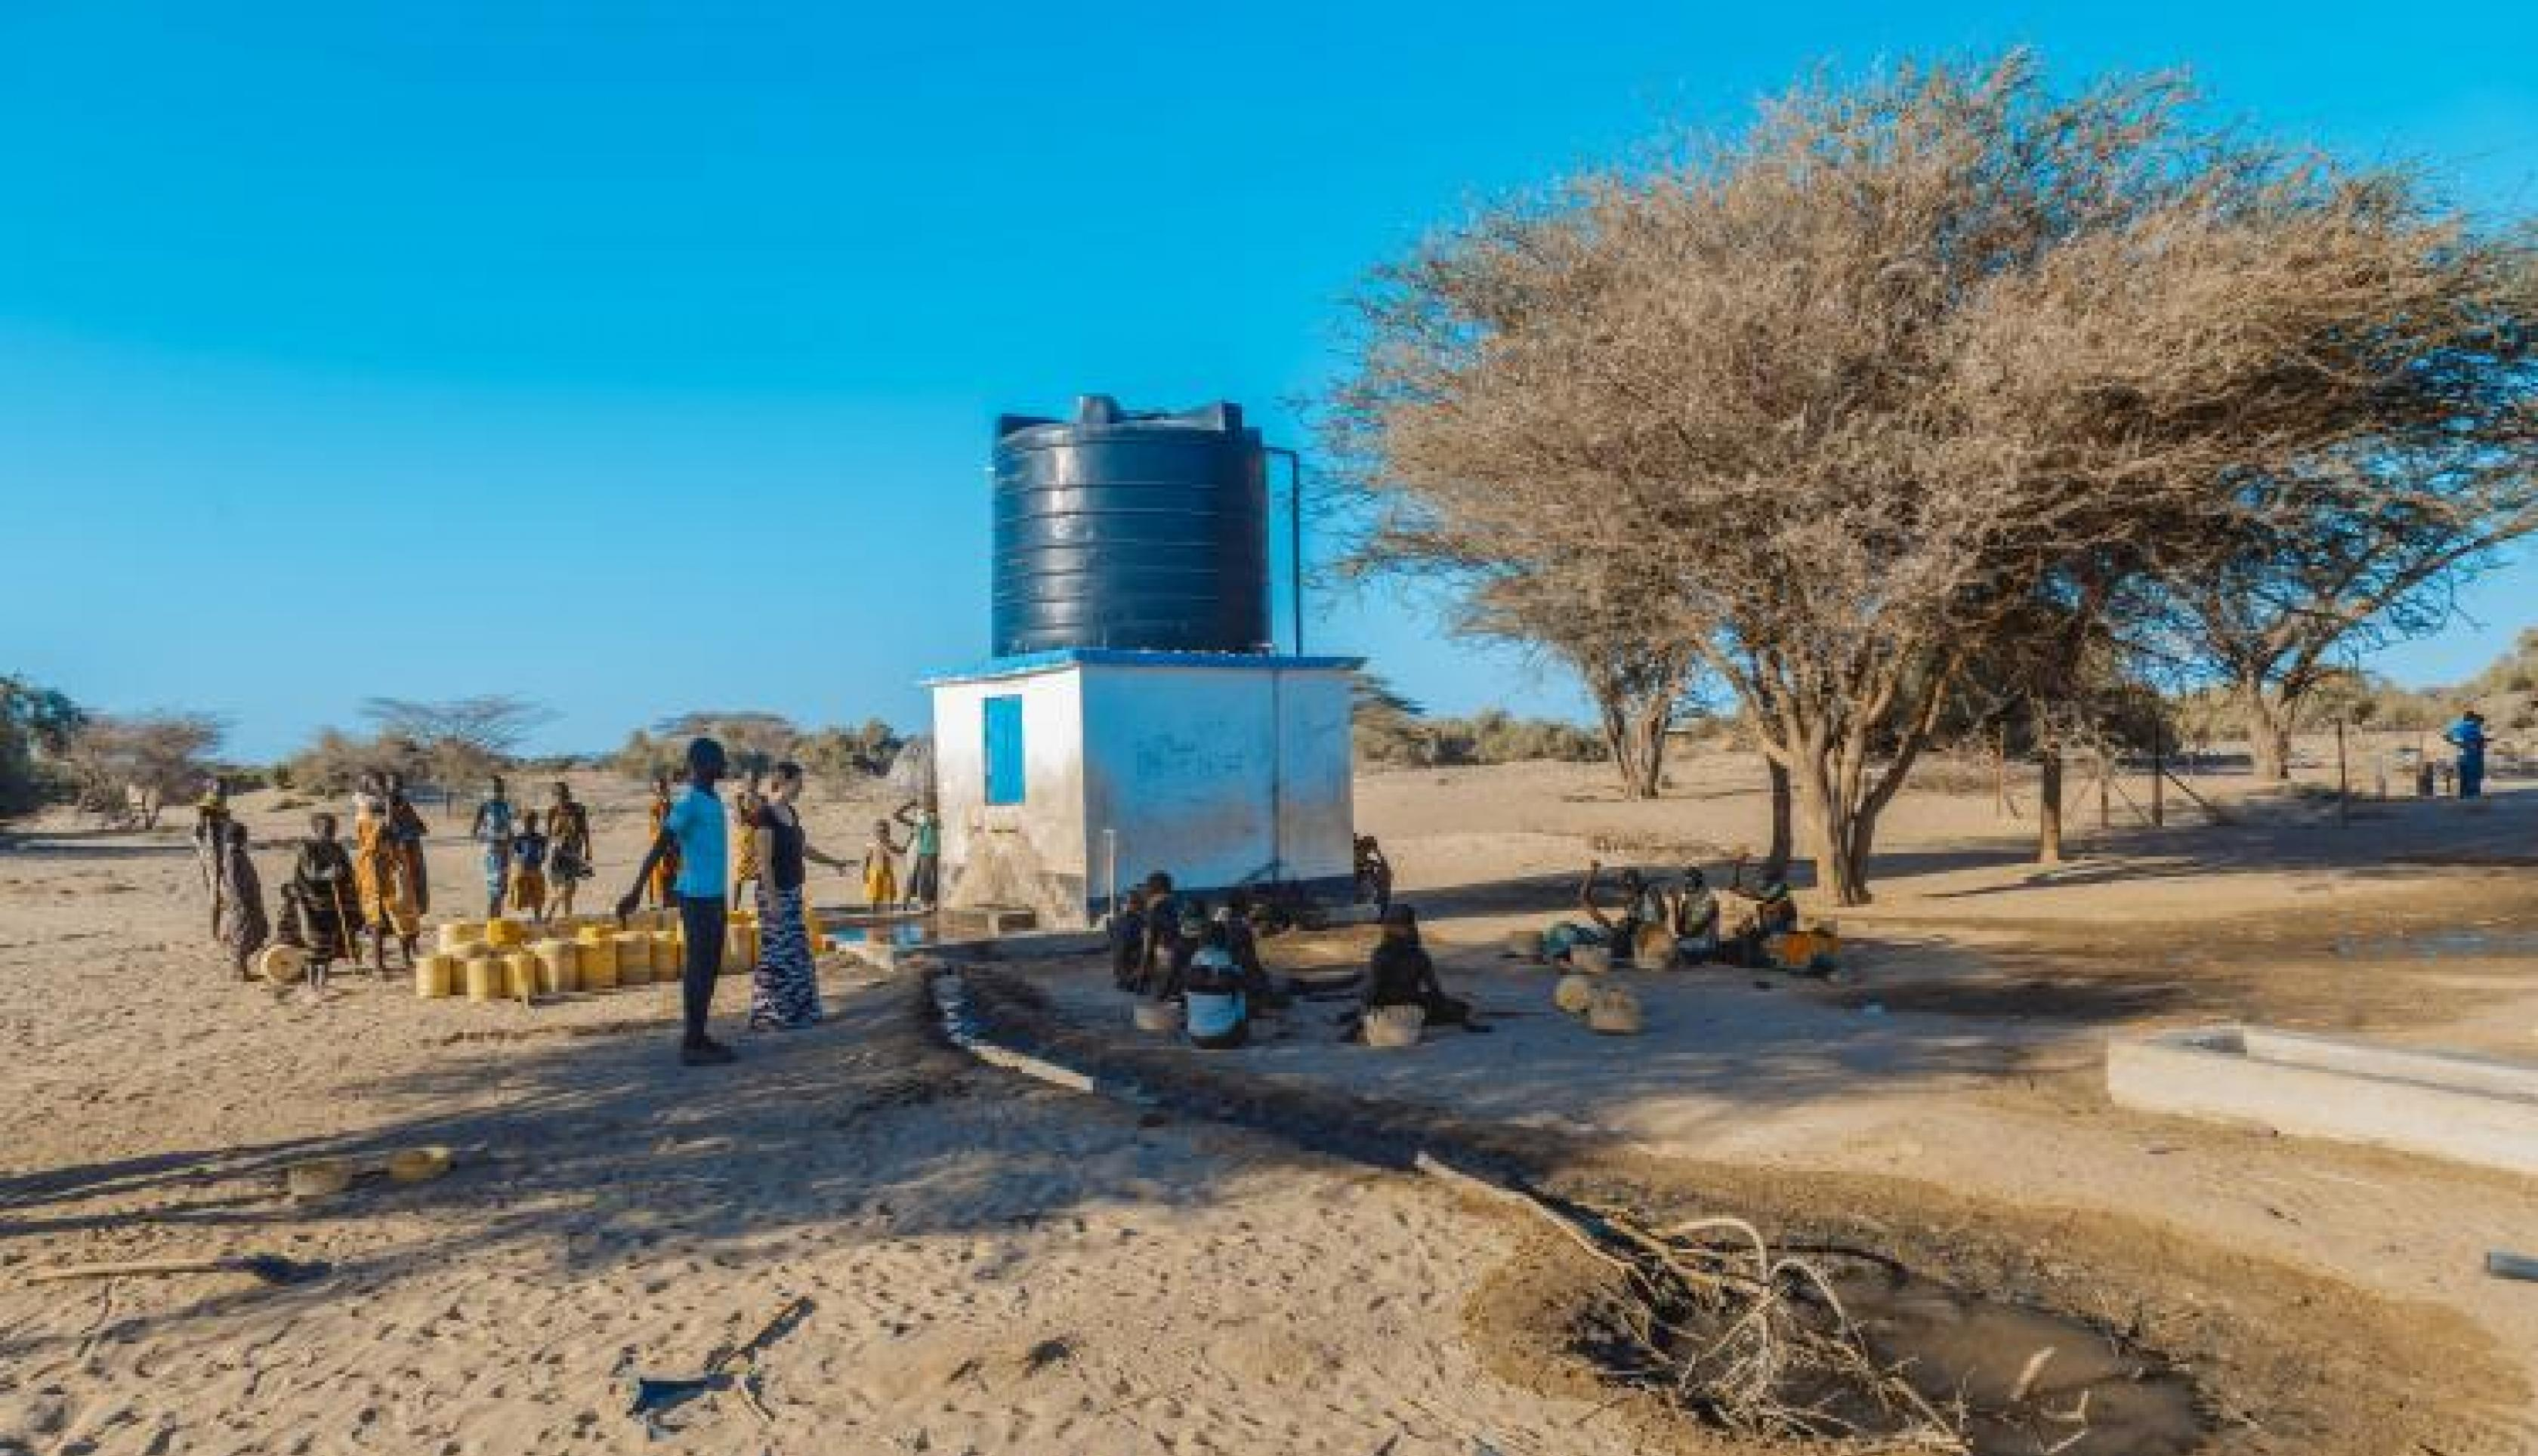 group of people near a groundwater pump